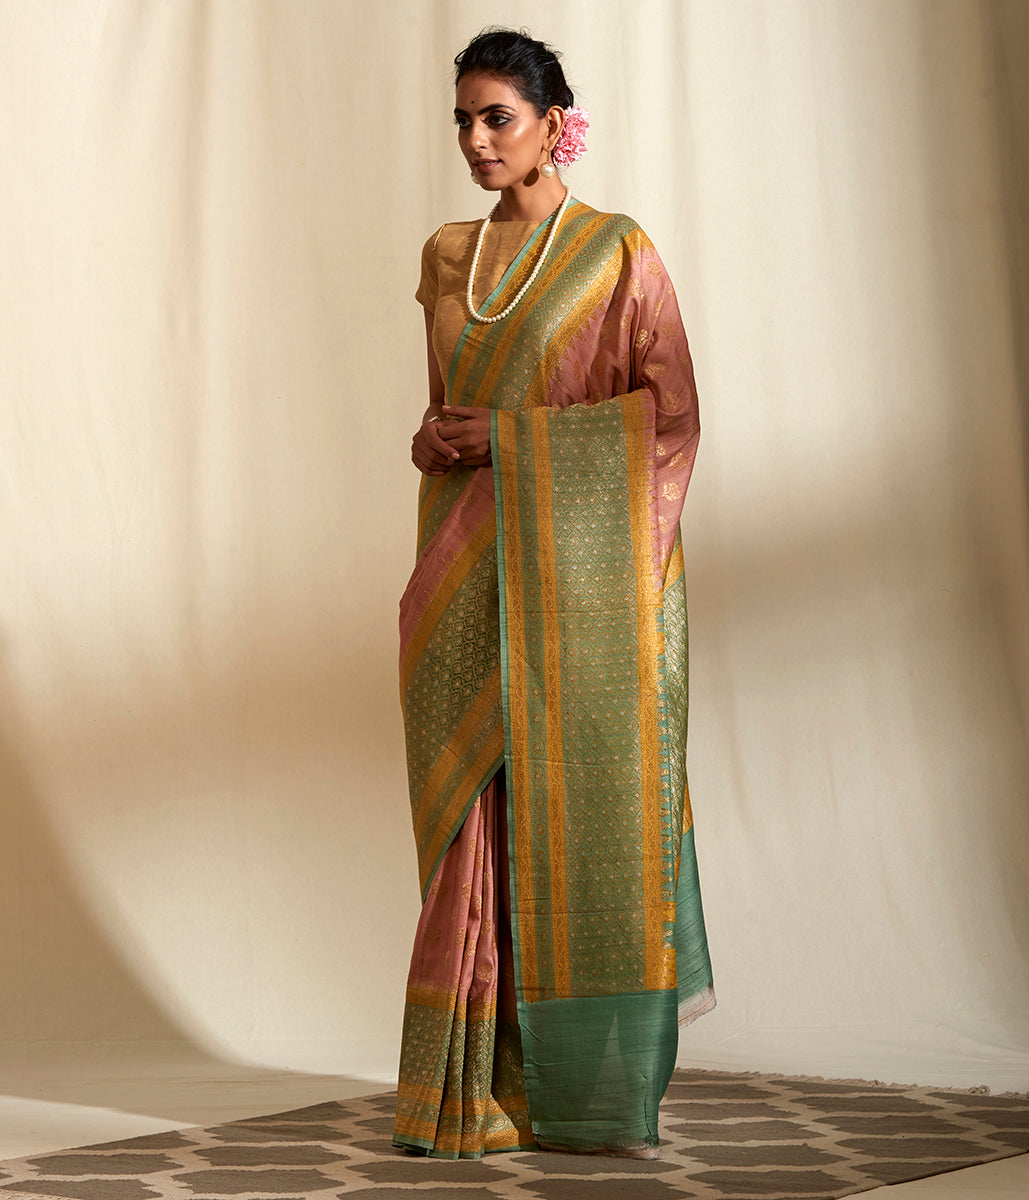 Handwoven Light Pink Kadhwa Tusser Georgette with Pista Green Border Saree